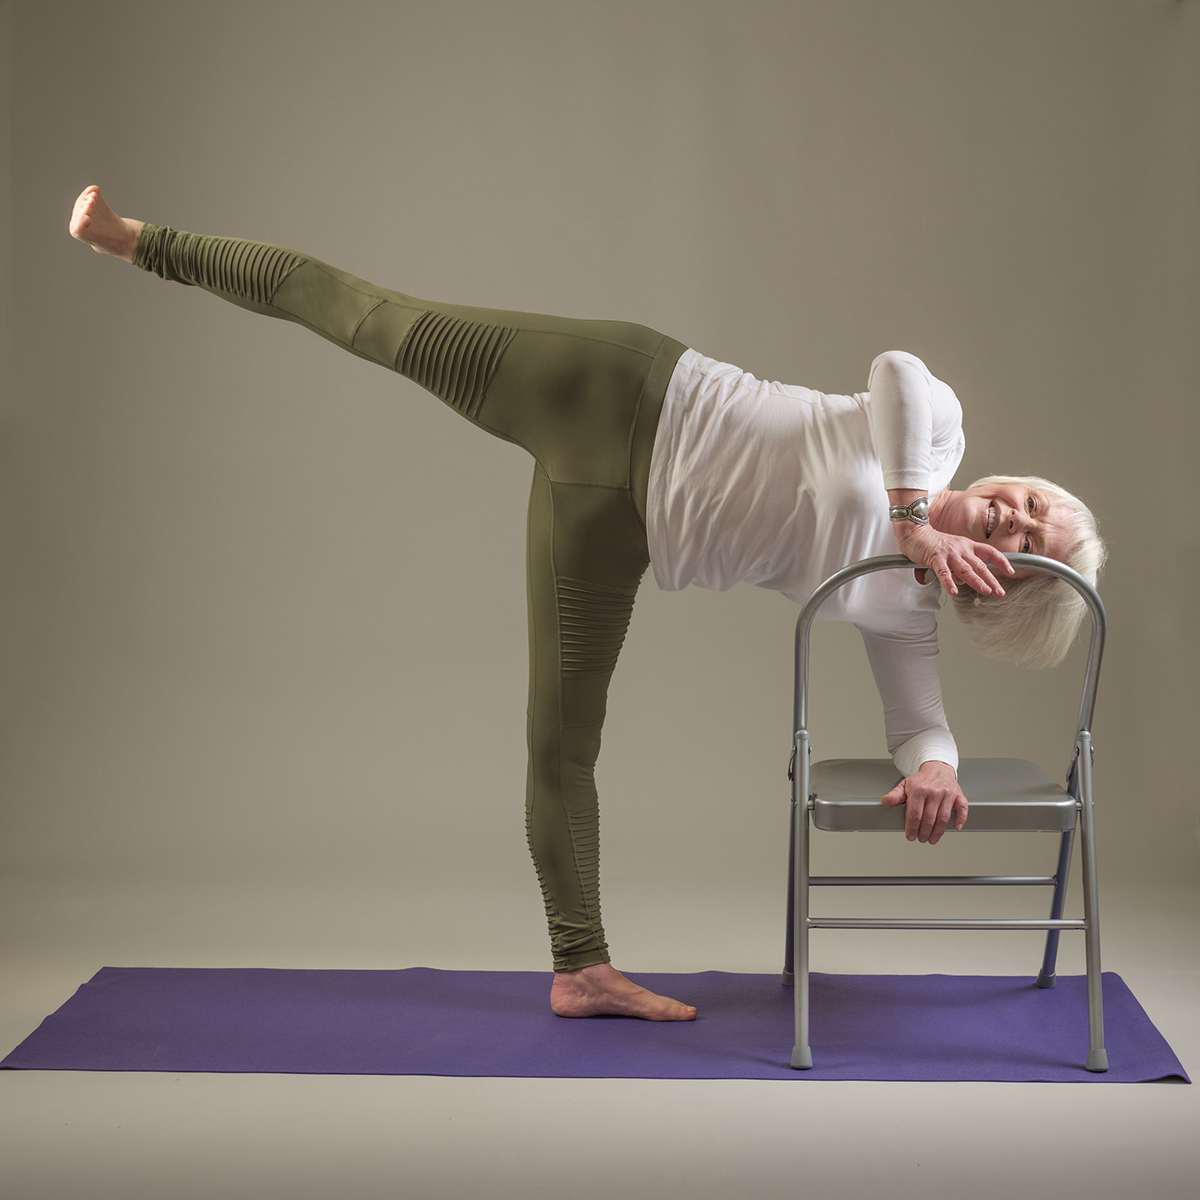 How To Use The Yoga Chair